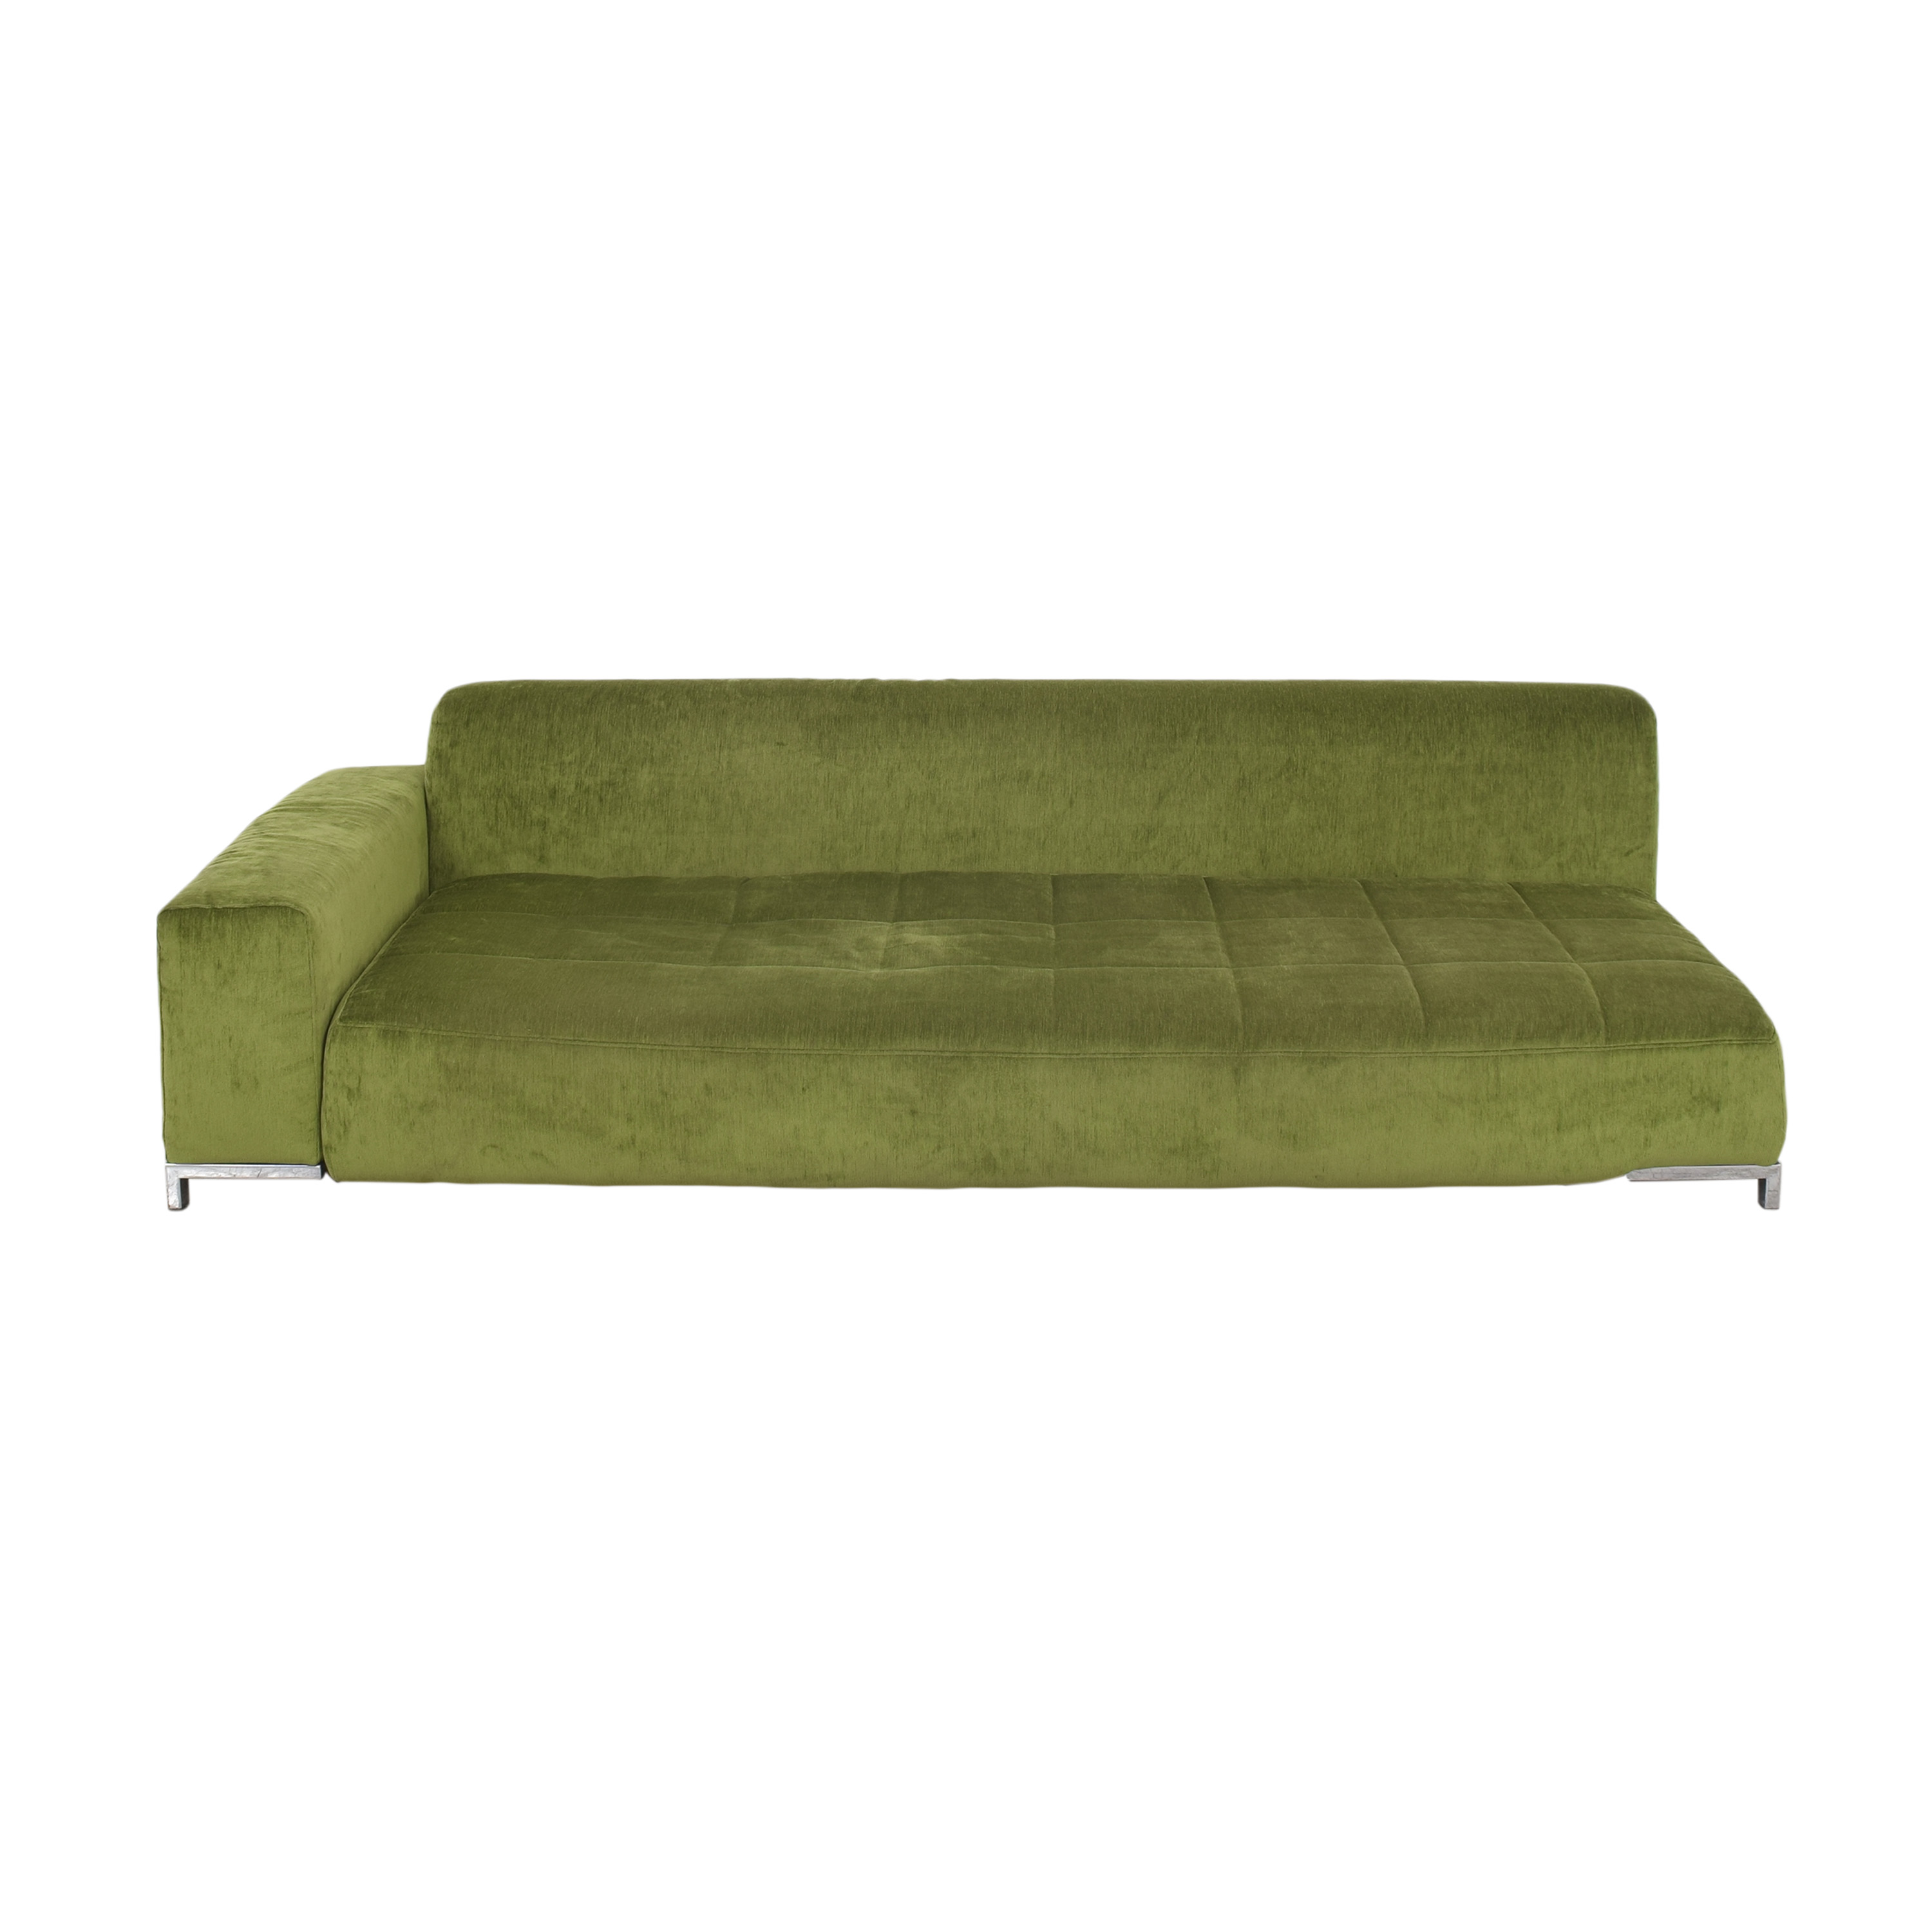 B&B Italia B&B Italia One Arm Sofa green